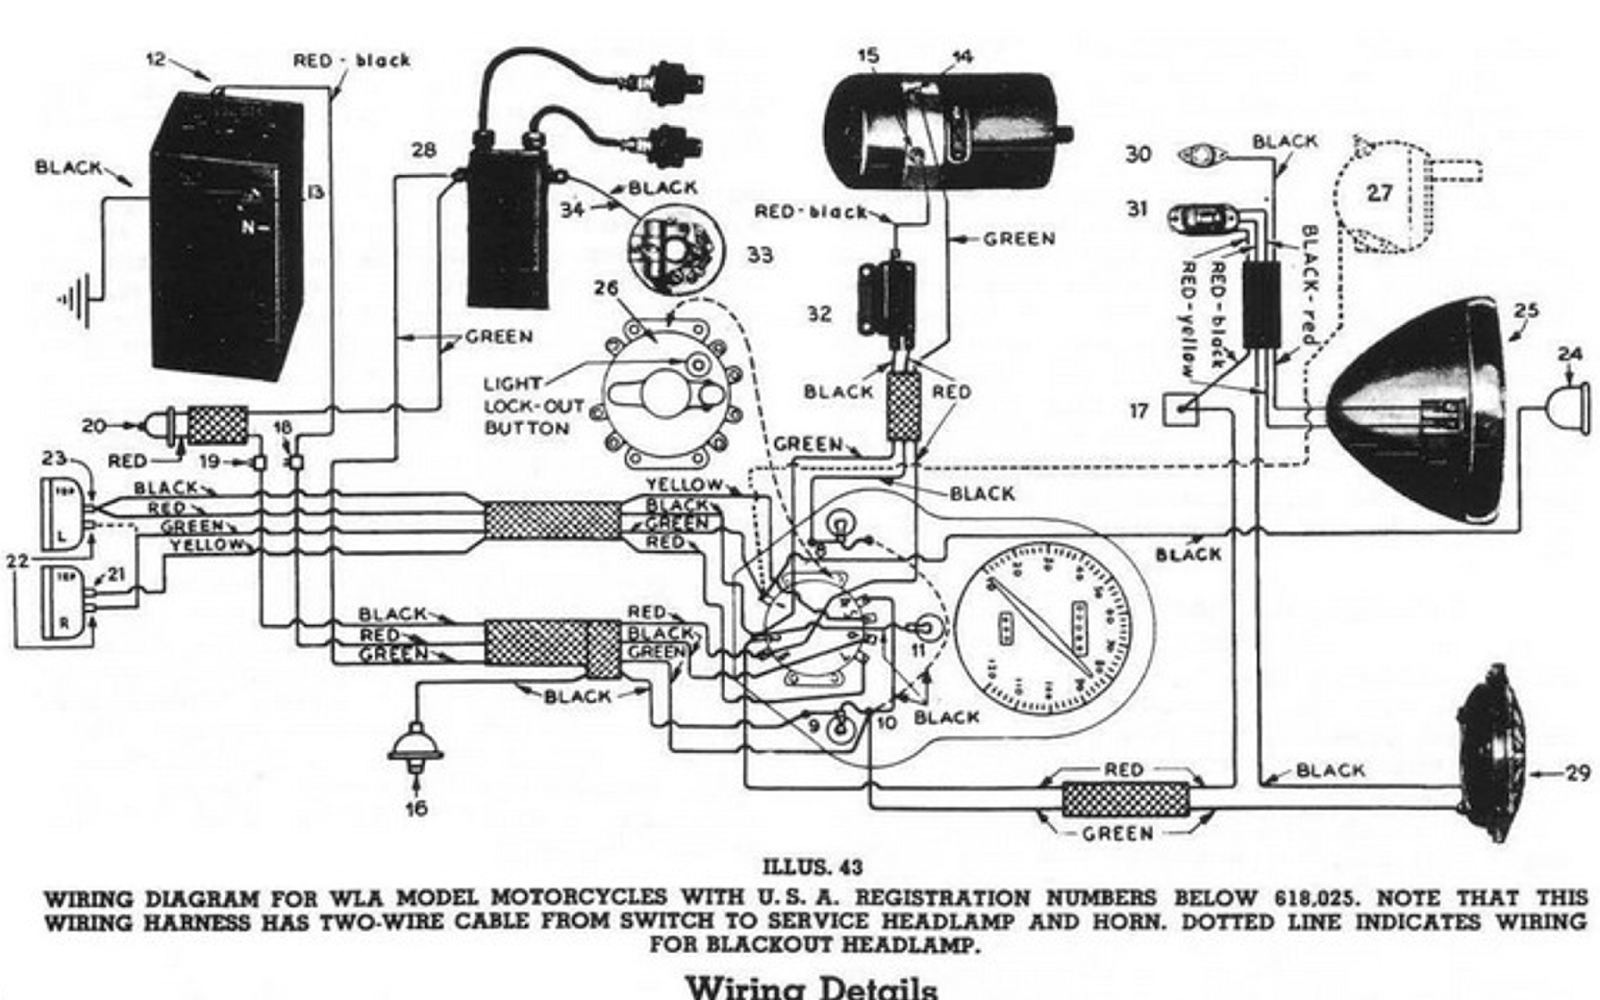 Harley Rocker Wiring Diagram | Wiring Liry on harley frame diagram, harley evo diagram, harley fuel lines diagram, harley shift linkage diagram, harley headlight diagram, harley stator diagram, harley relay diagram, harley generator diagram, harley throttle cable diagram, harley rear axle diagram, harley dash wiring, harley magneto diagram, harley wiring color codes, harley fuel pump diagram, harley softail wiring harness, harley fuse diagram, harley switch diagram, harley panhead wiring, harley wiring tools,